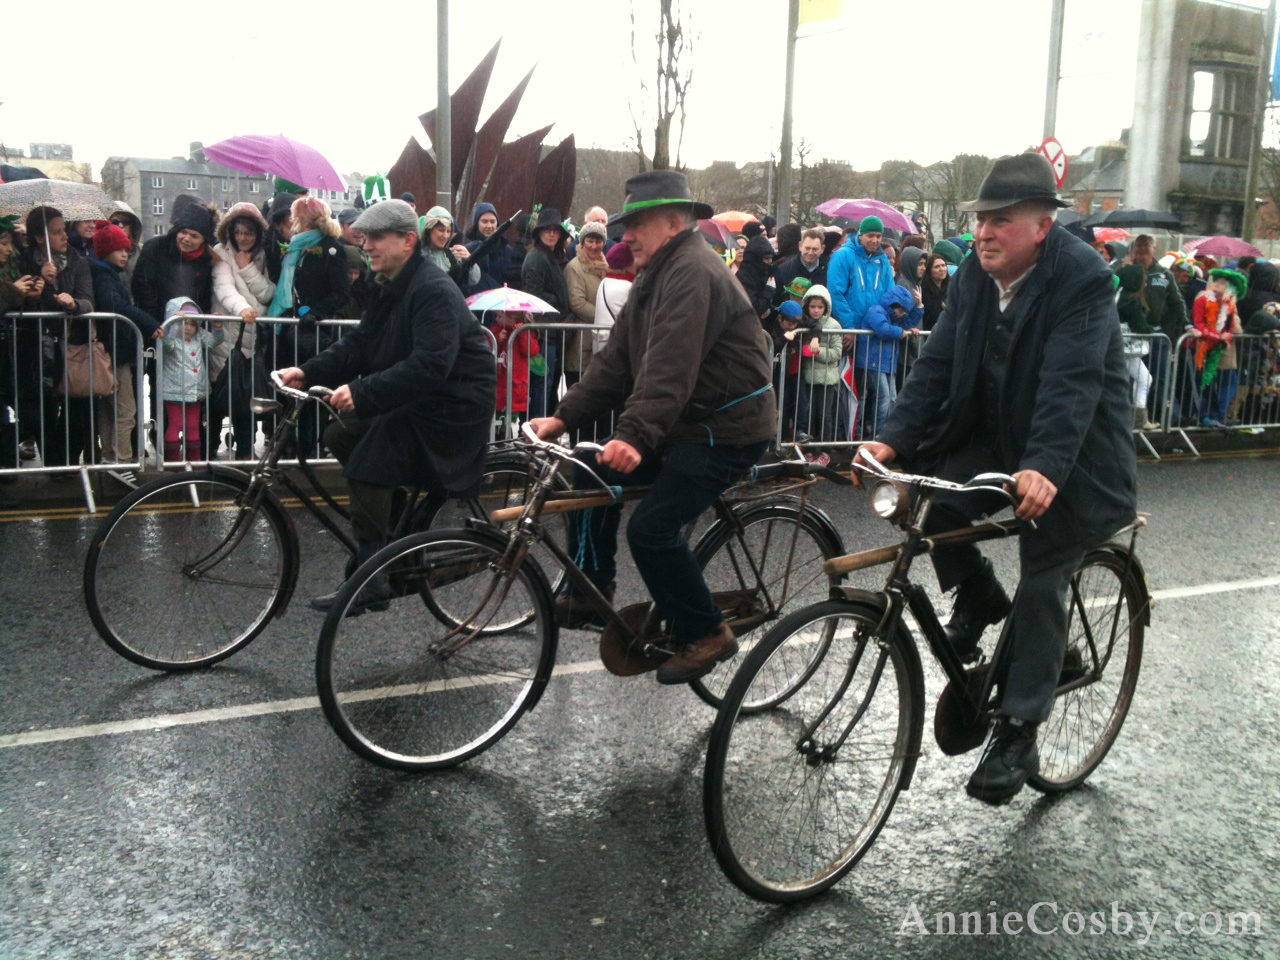 Old Irish Men on bikes